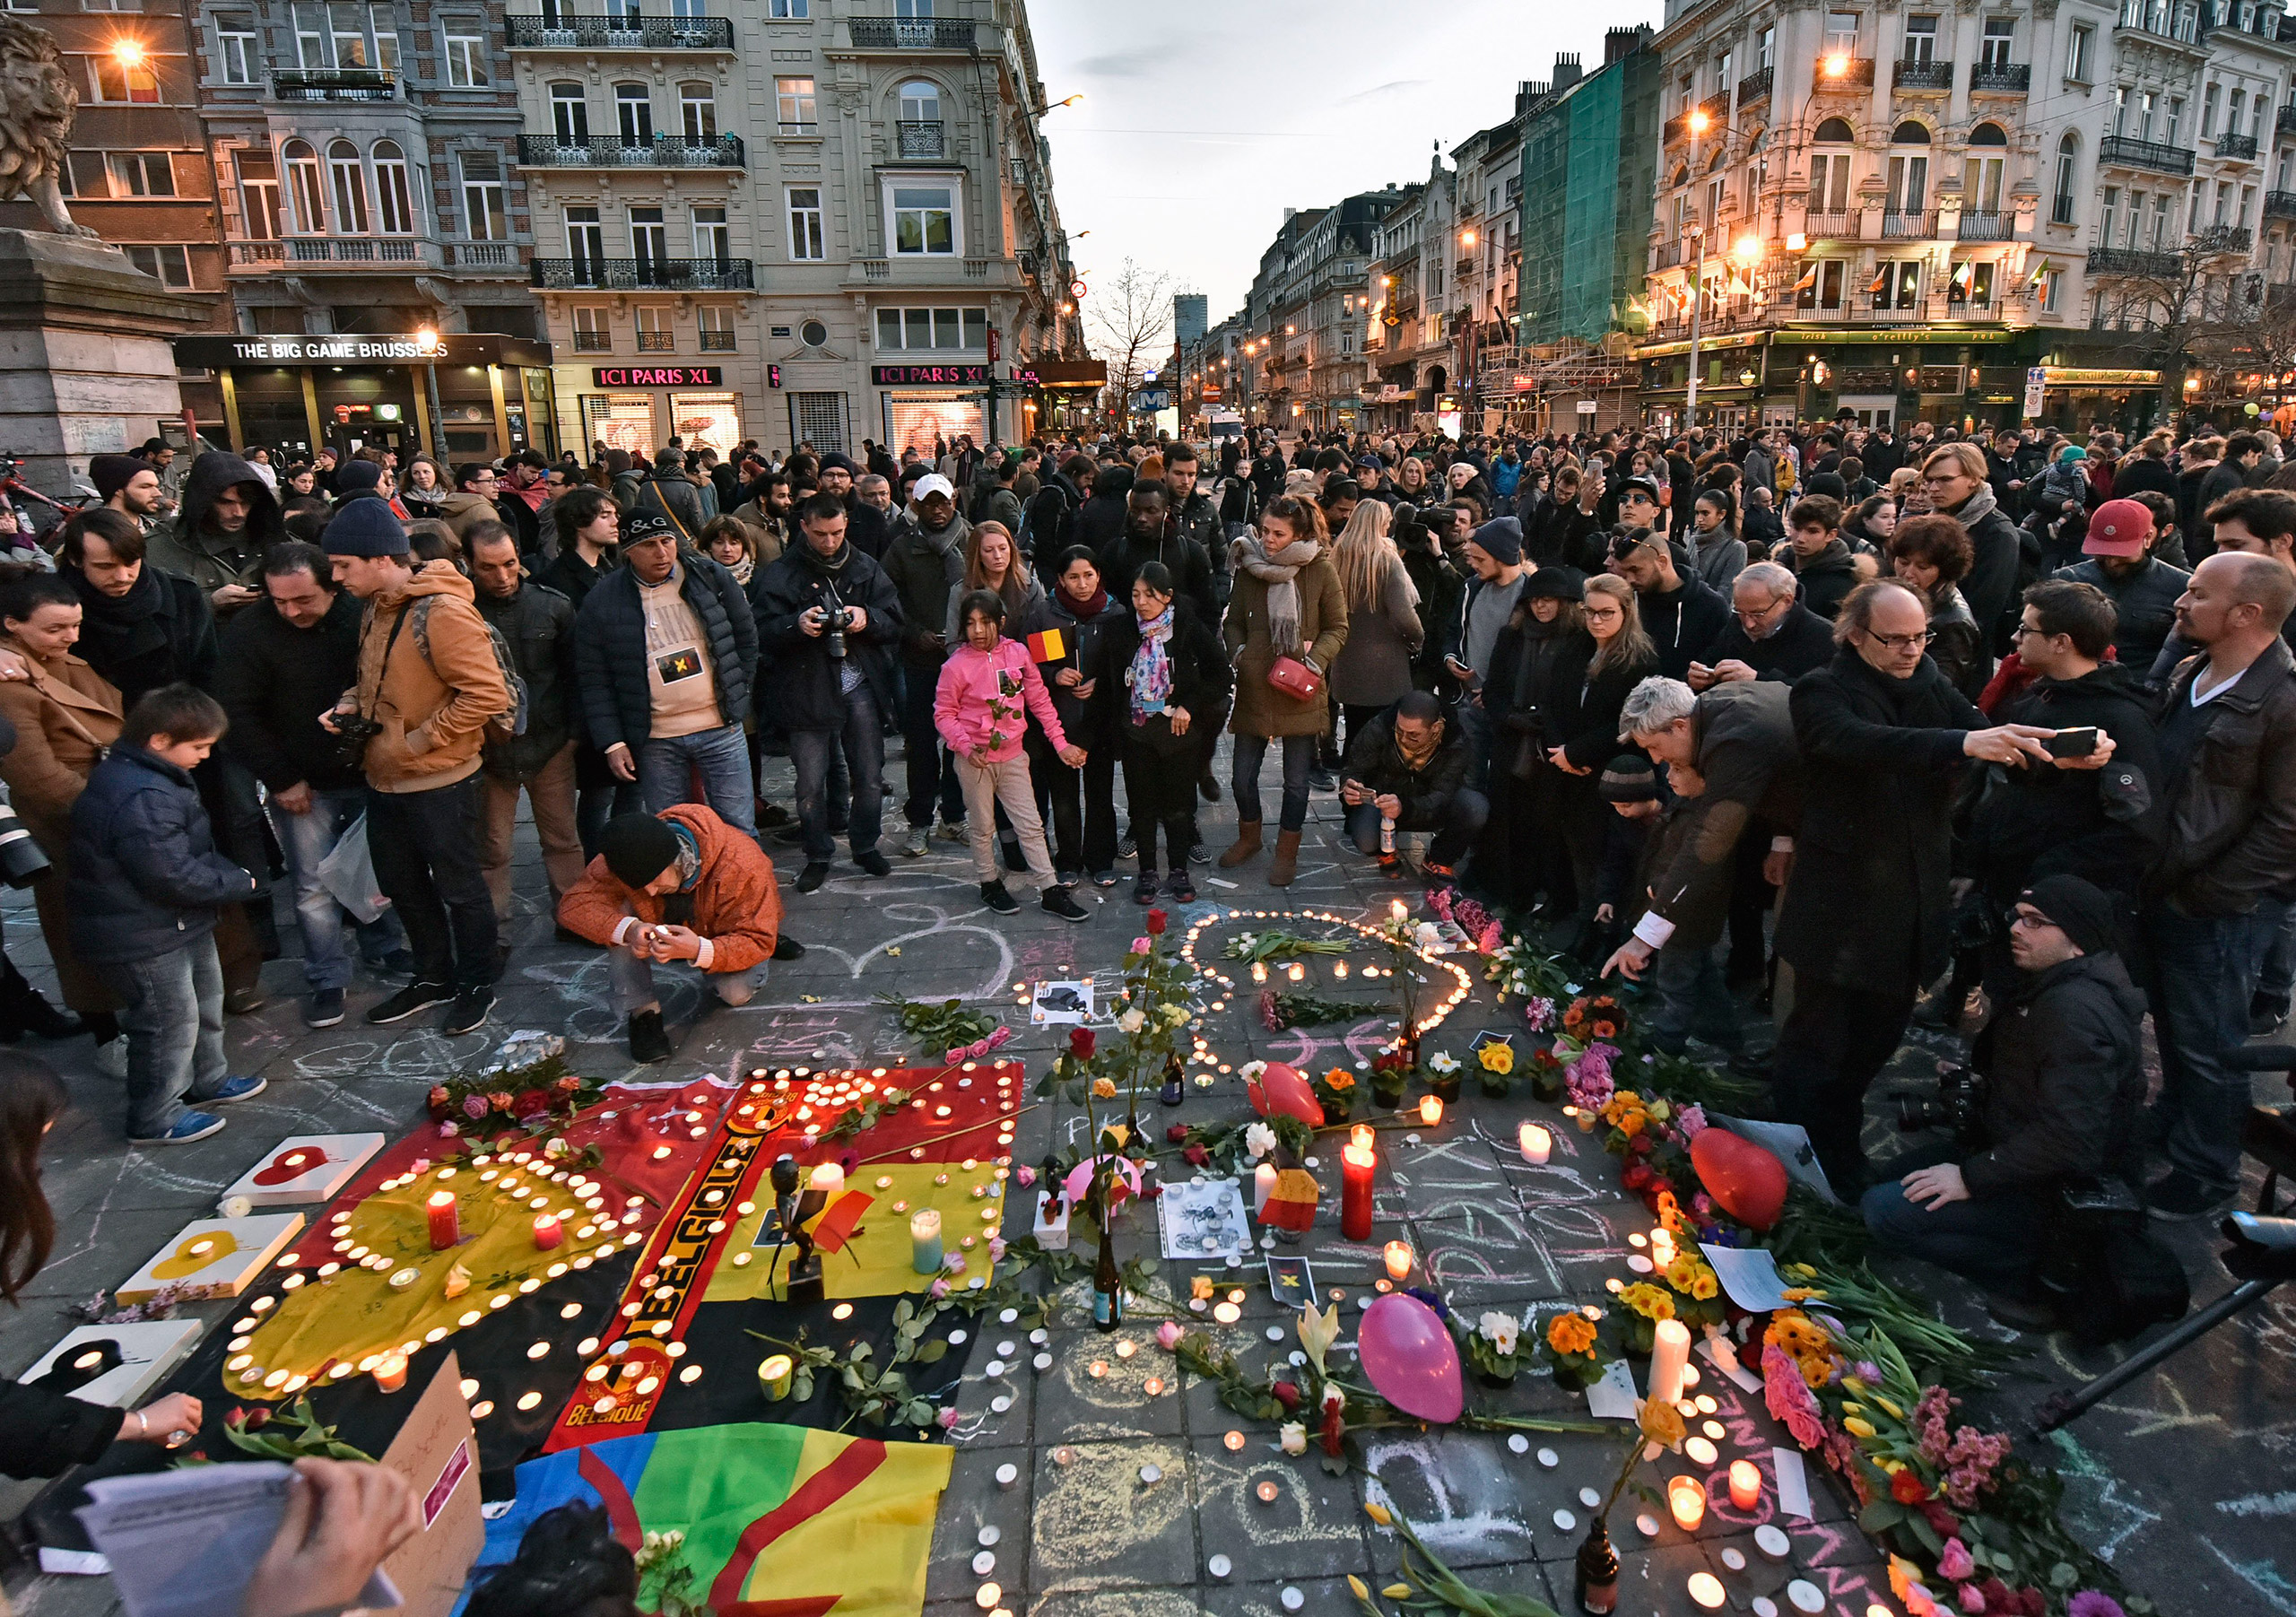 People bring flowers and candles to mourn at the Place de la Bourse in the center of Brussels, Belgium, March 22, 2016.